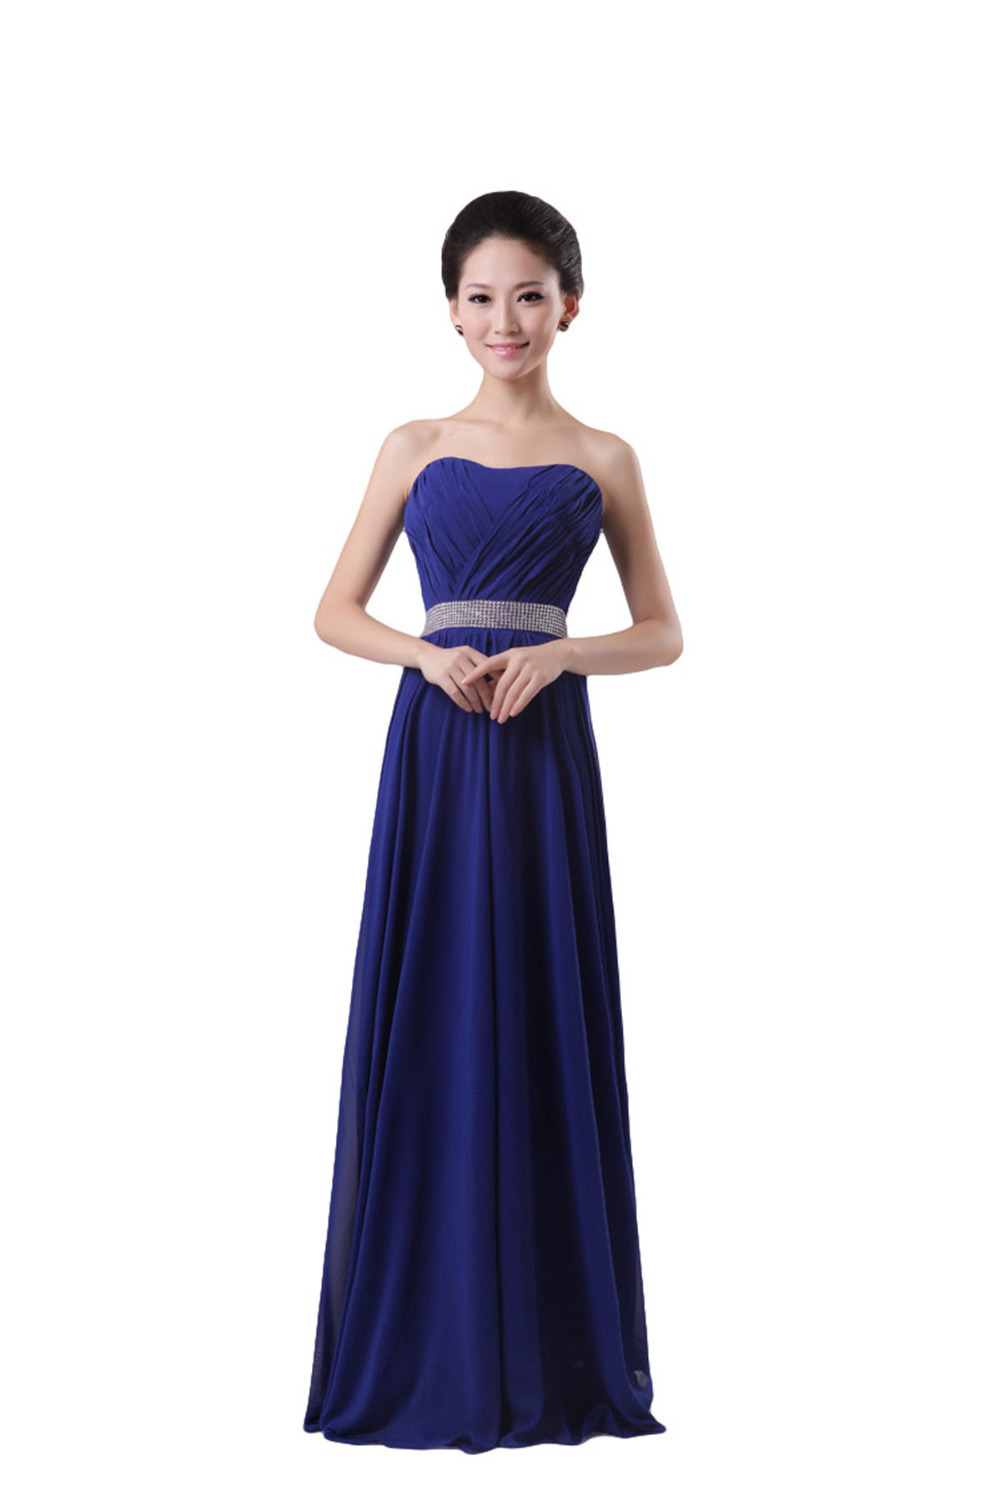 Sexy strapless beading bridesmaid dresses 2014 long for Cheap strapless wedding dresses